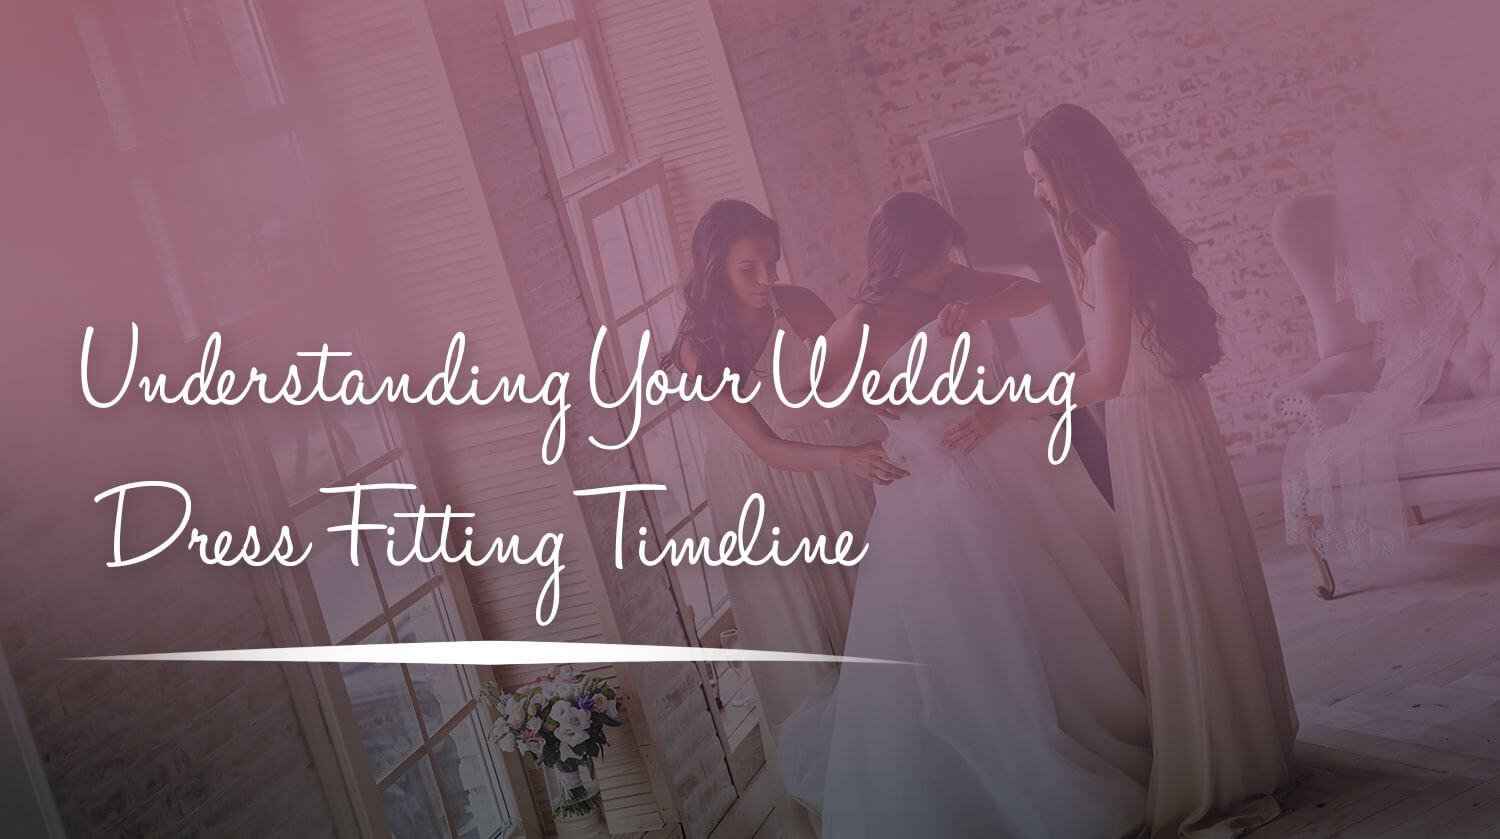 Understanding Your Wedding Dress Fitting Timeline